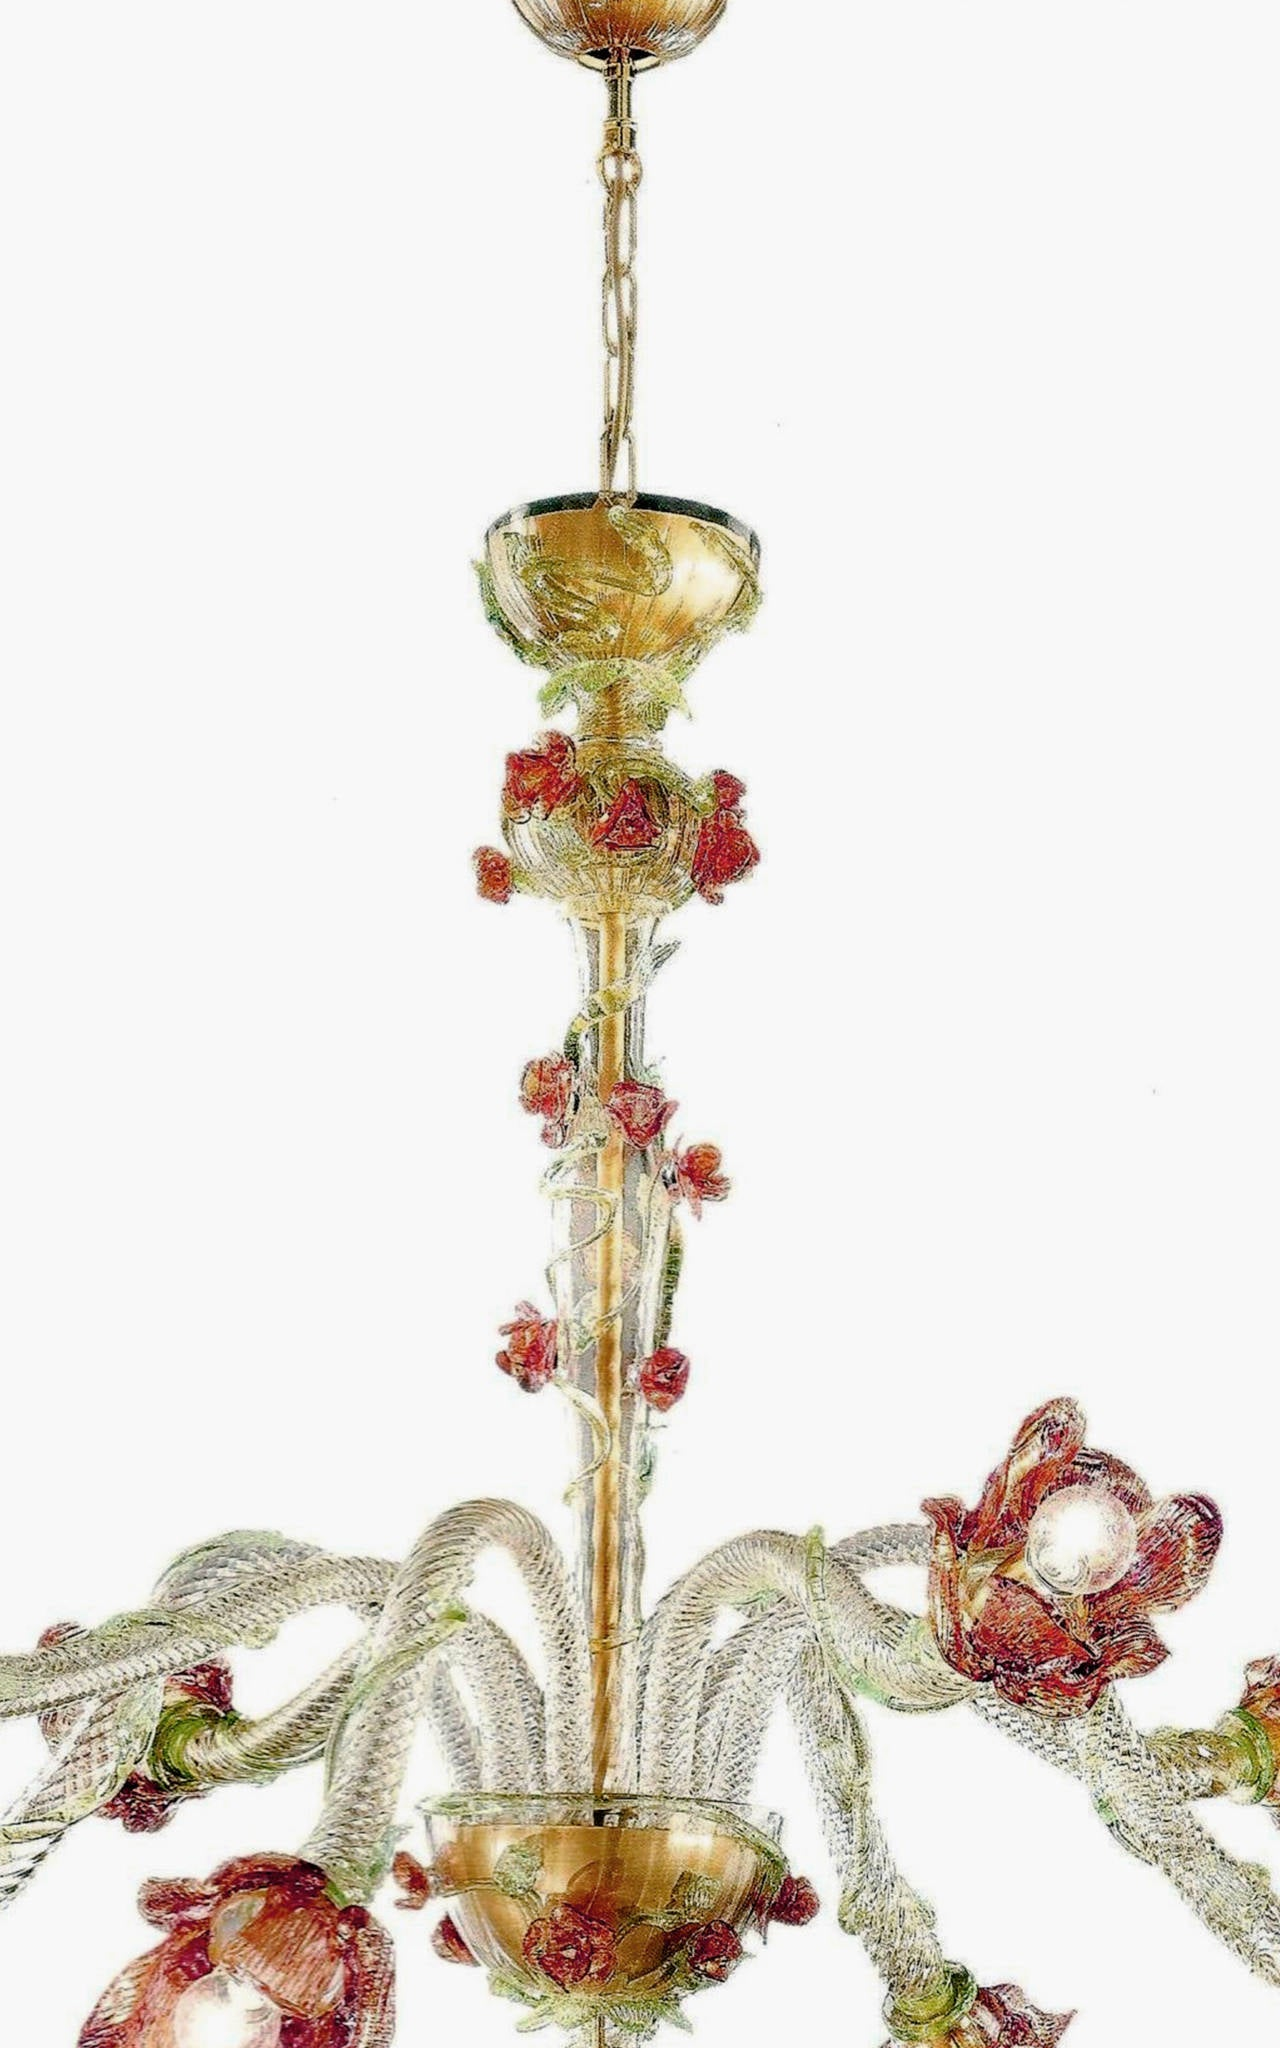 Italian Midcentury Floral Venetian / Murano Glass Chandelier For Sale 1